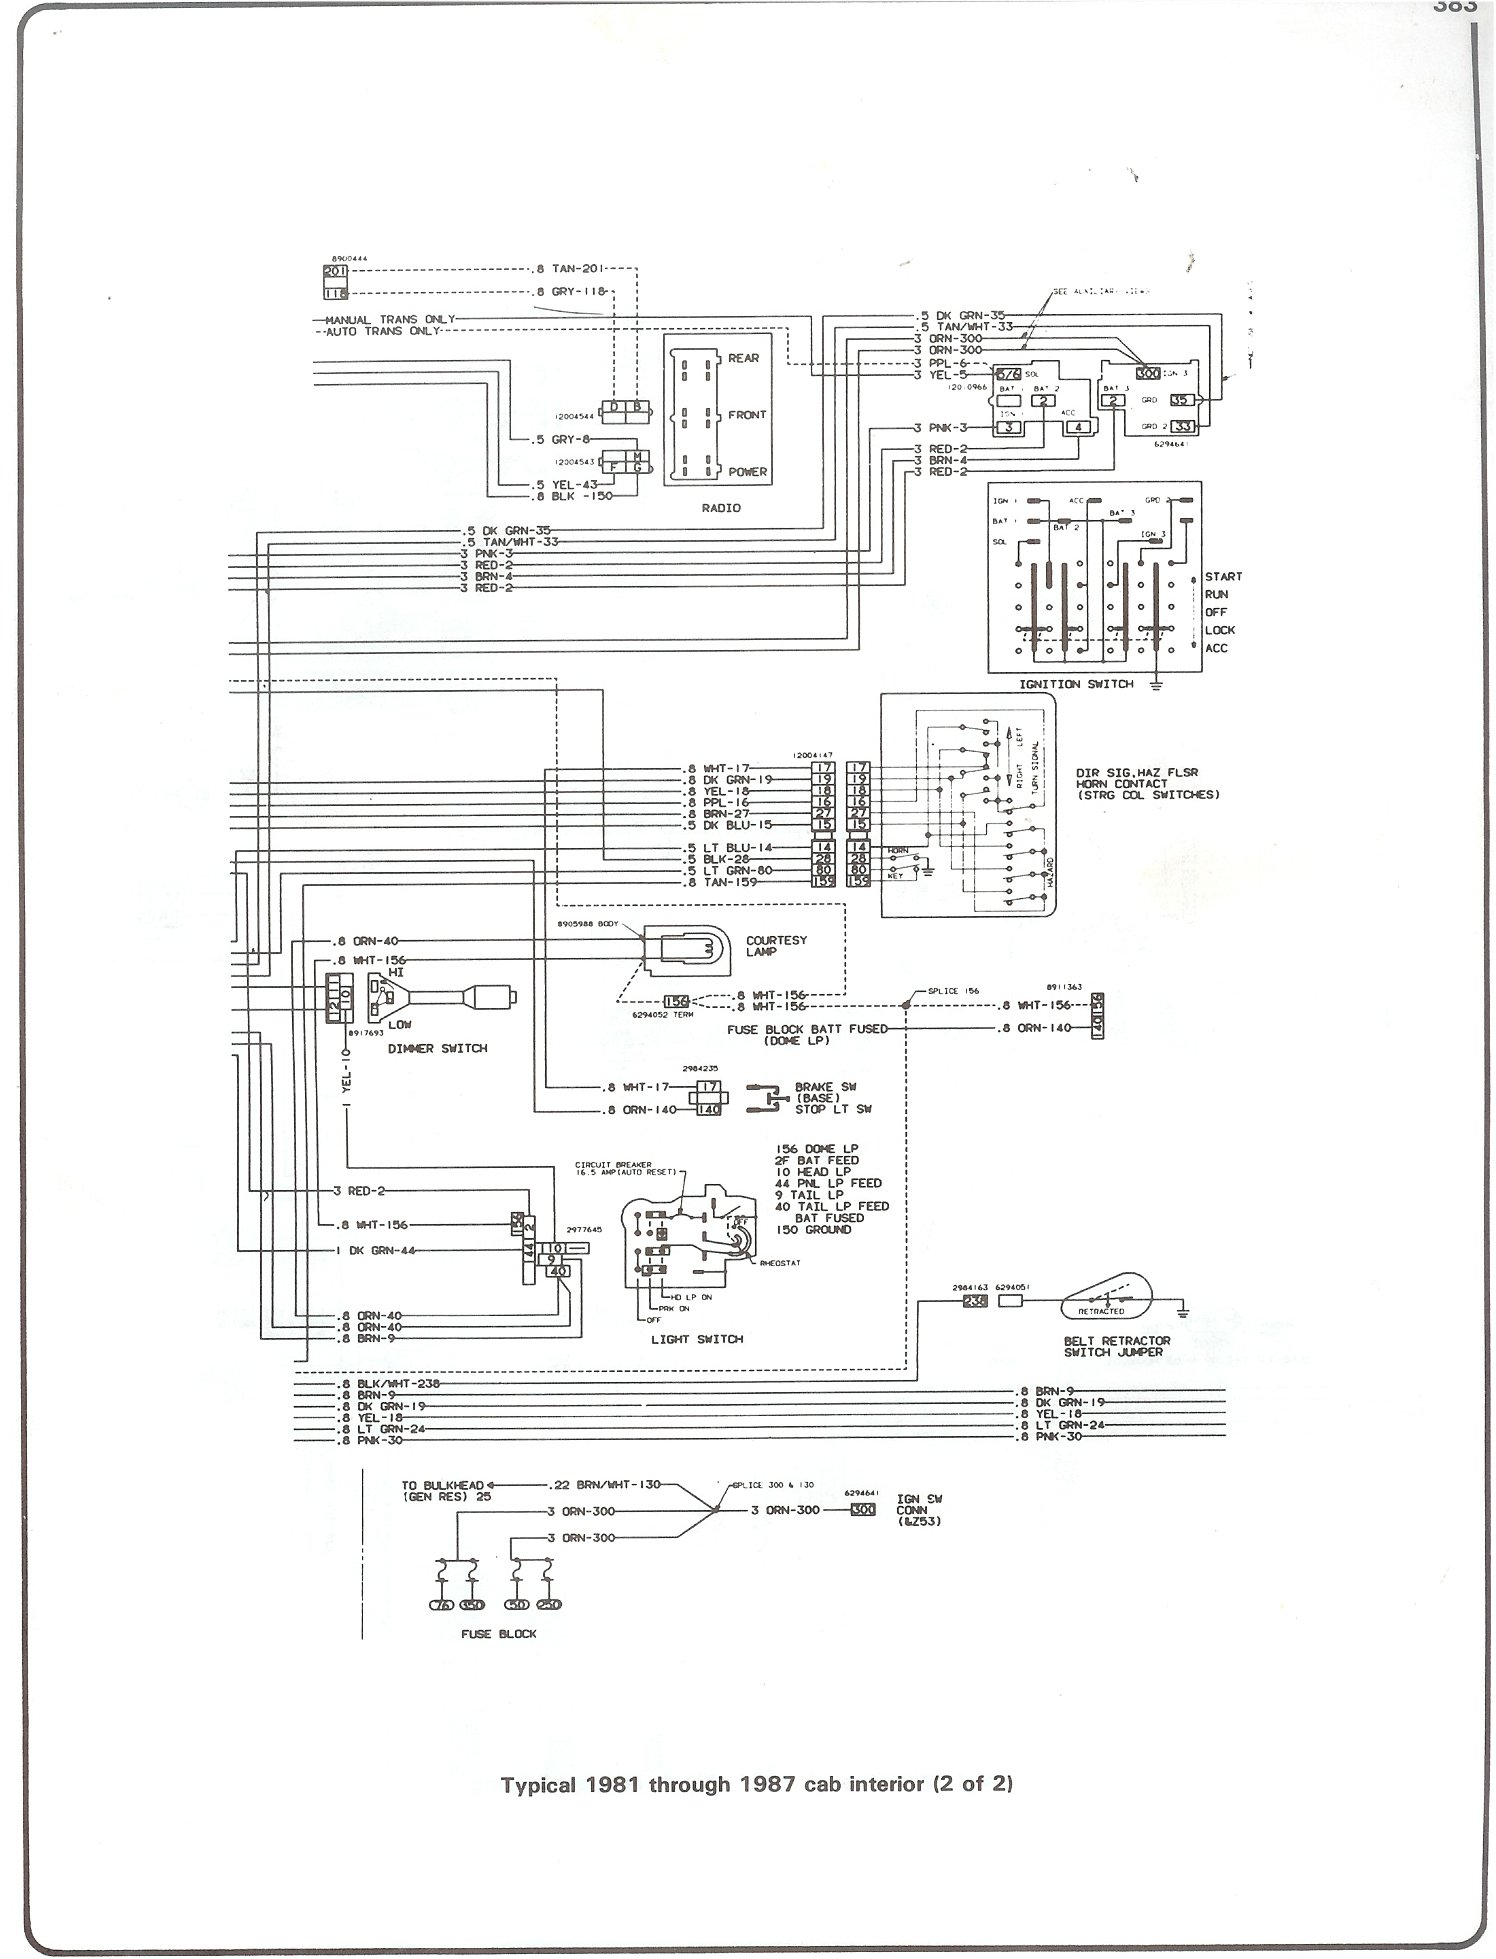 1979 Gmc Wiring Diagram Not Lossing General Complete 73 87 Diagrams Rh Forum 87chevytrucks Com